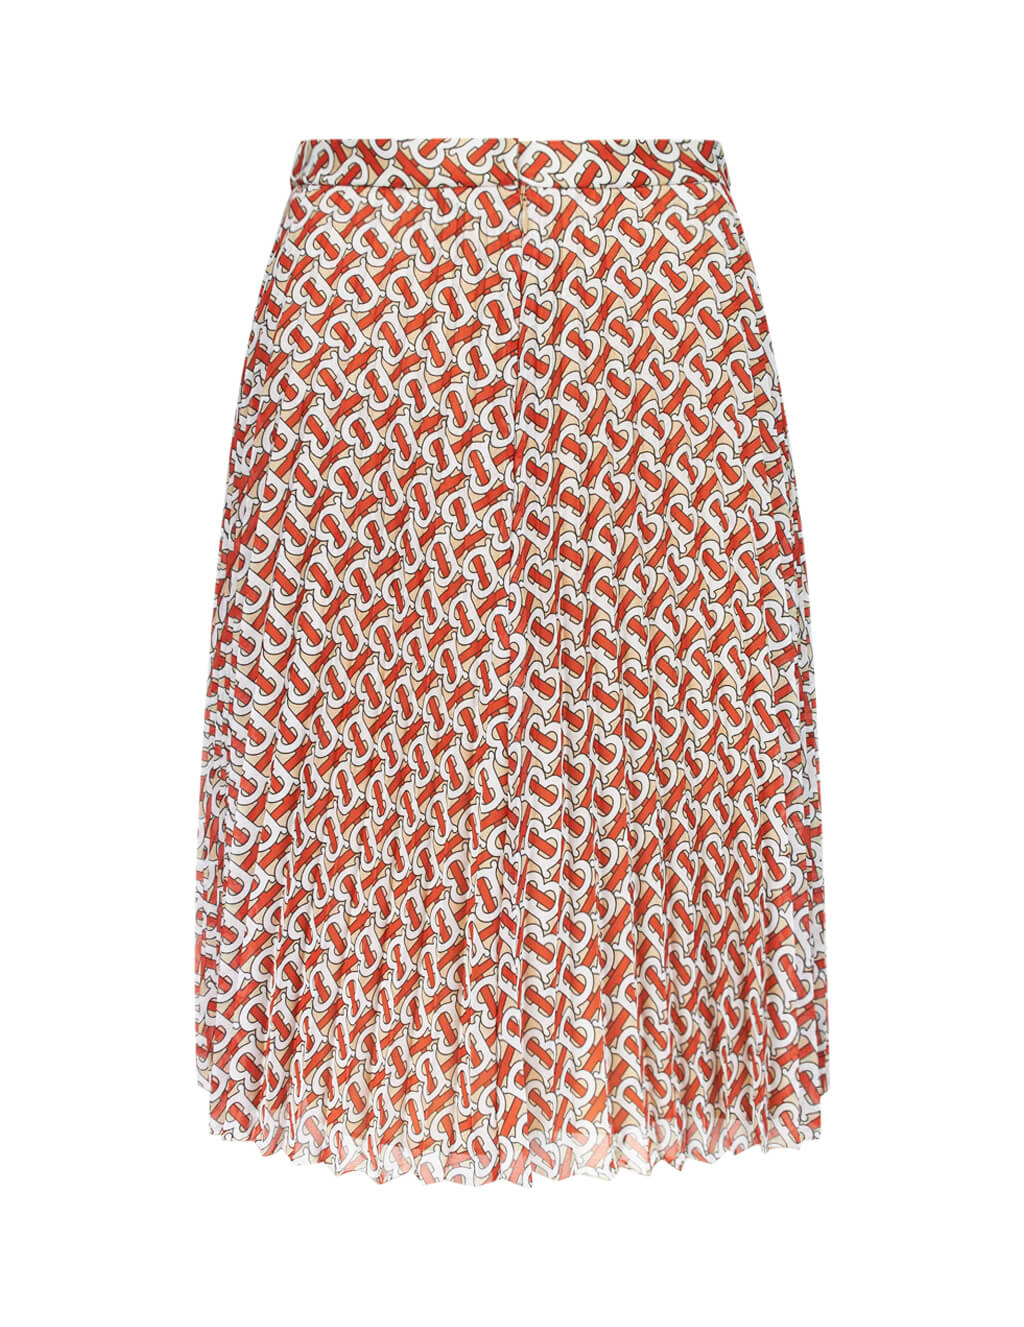 Burberry Women's Giulio Fashion Vermillion Red Monogram Pleated Skirt 8016520A7294